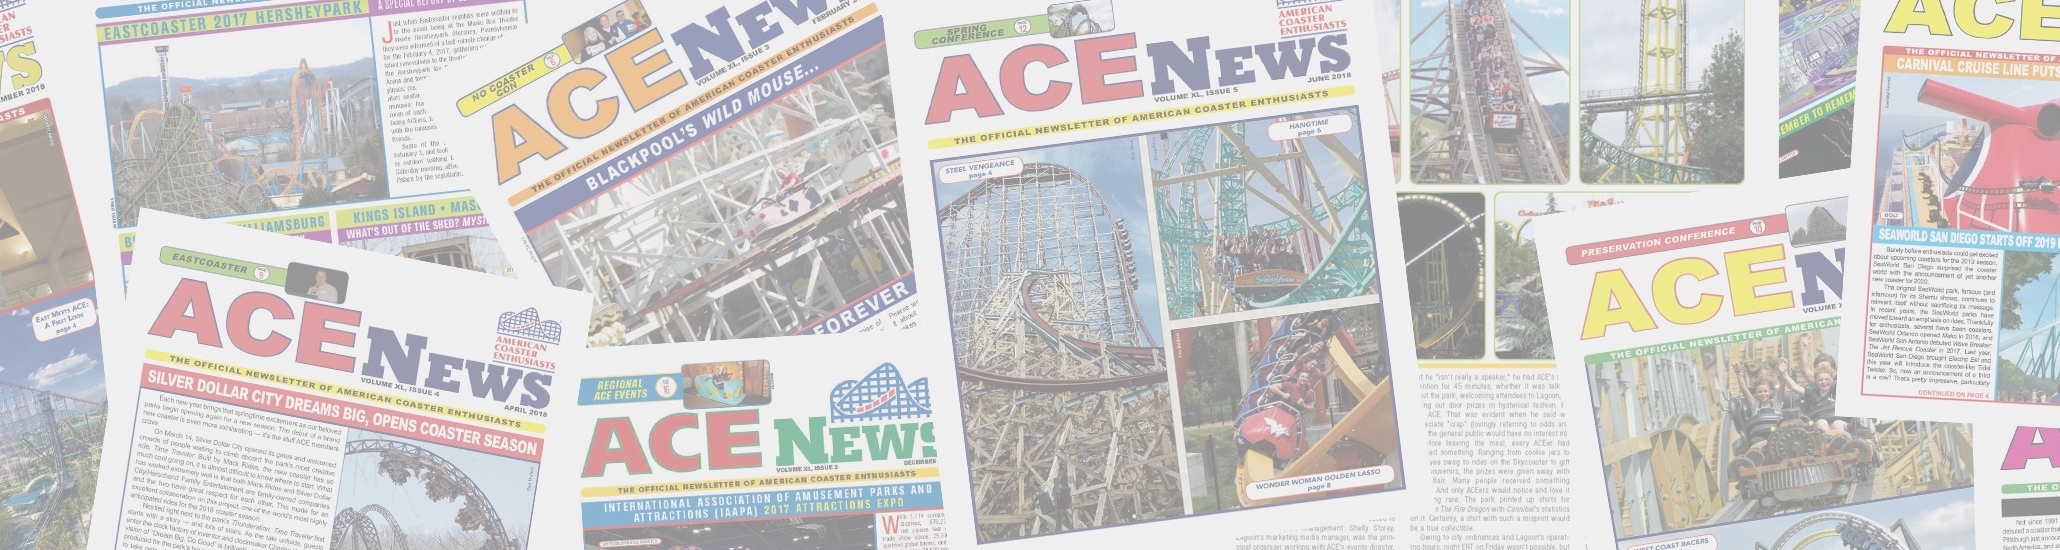 ACE News Collage